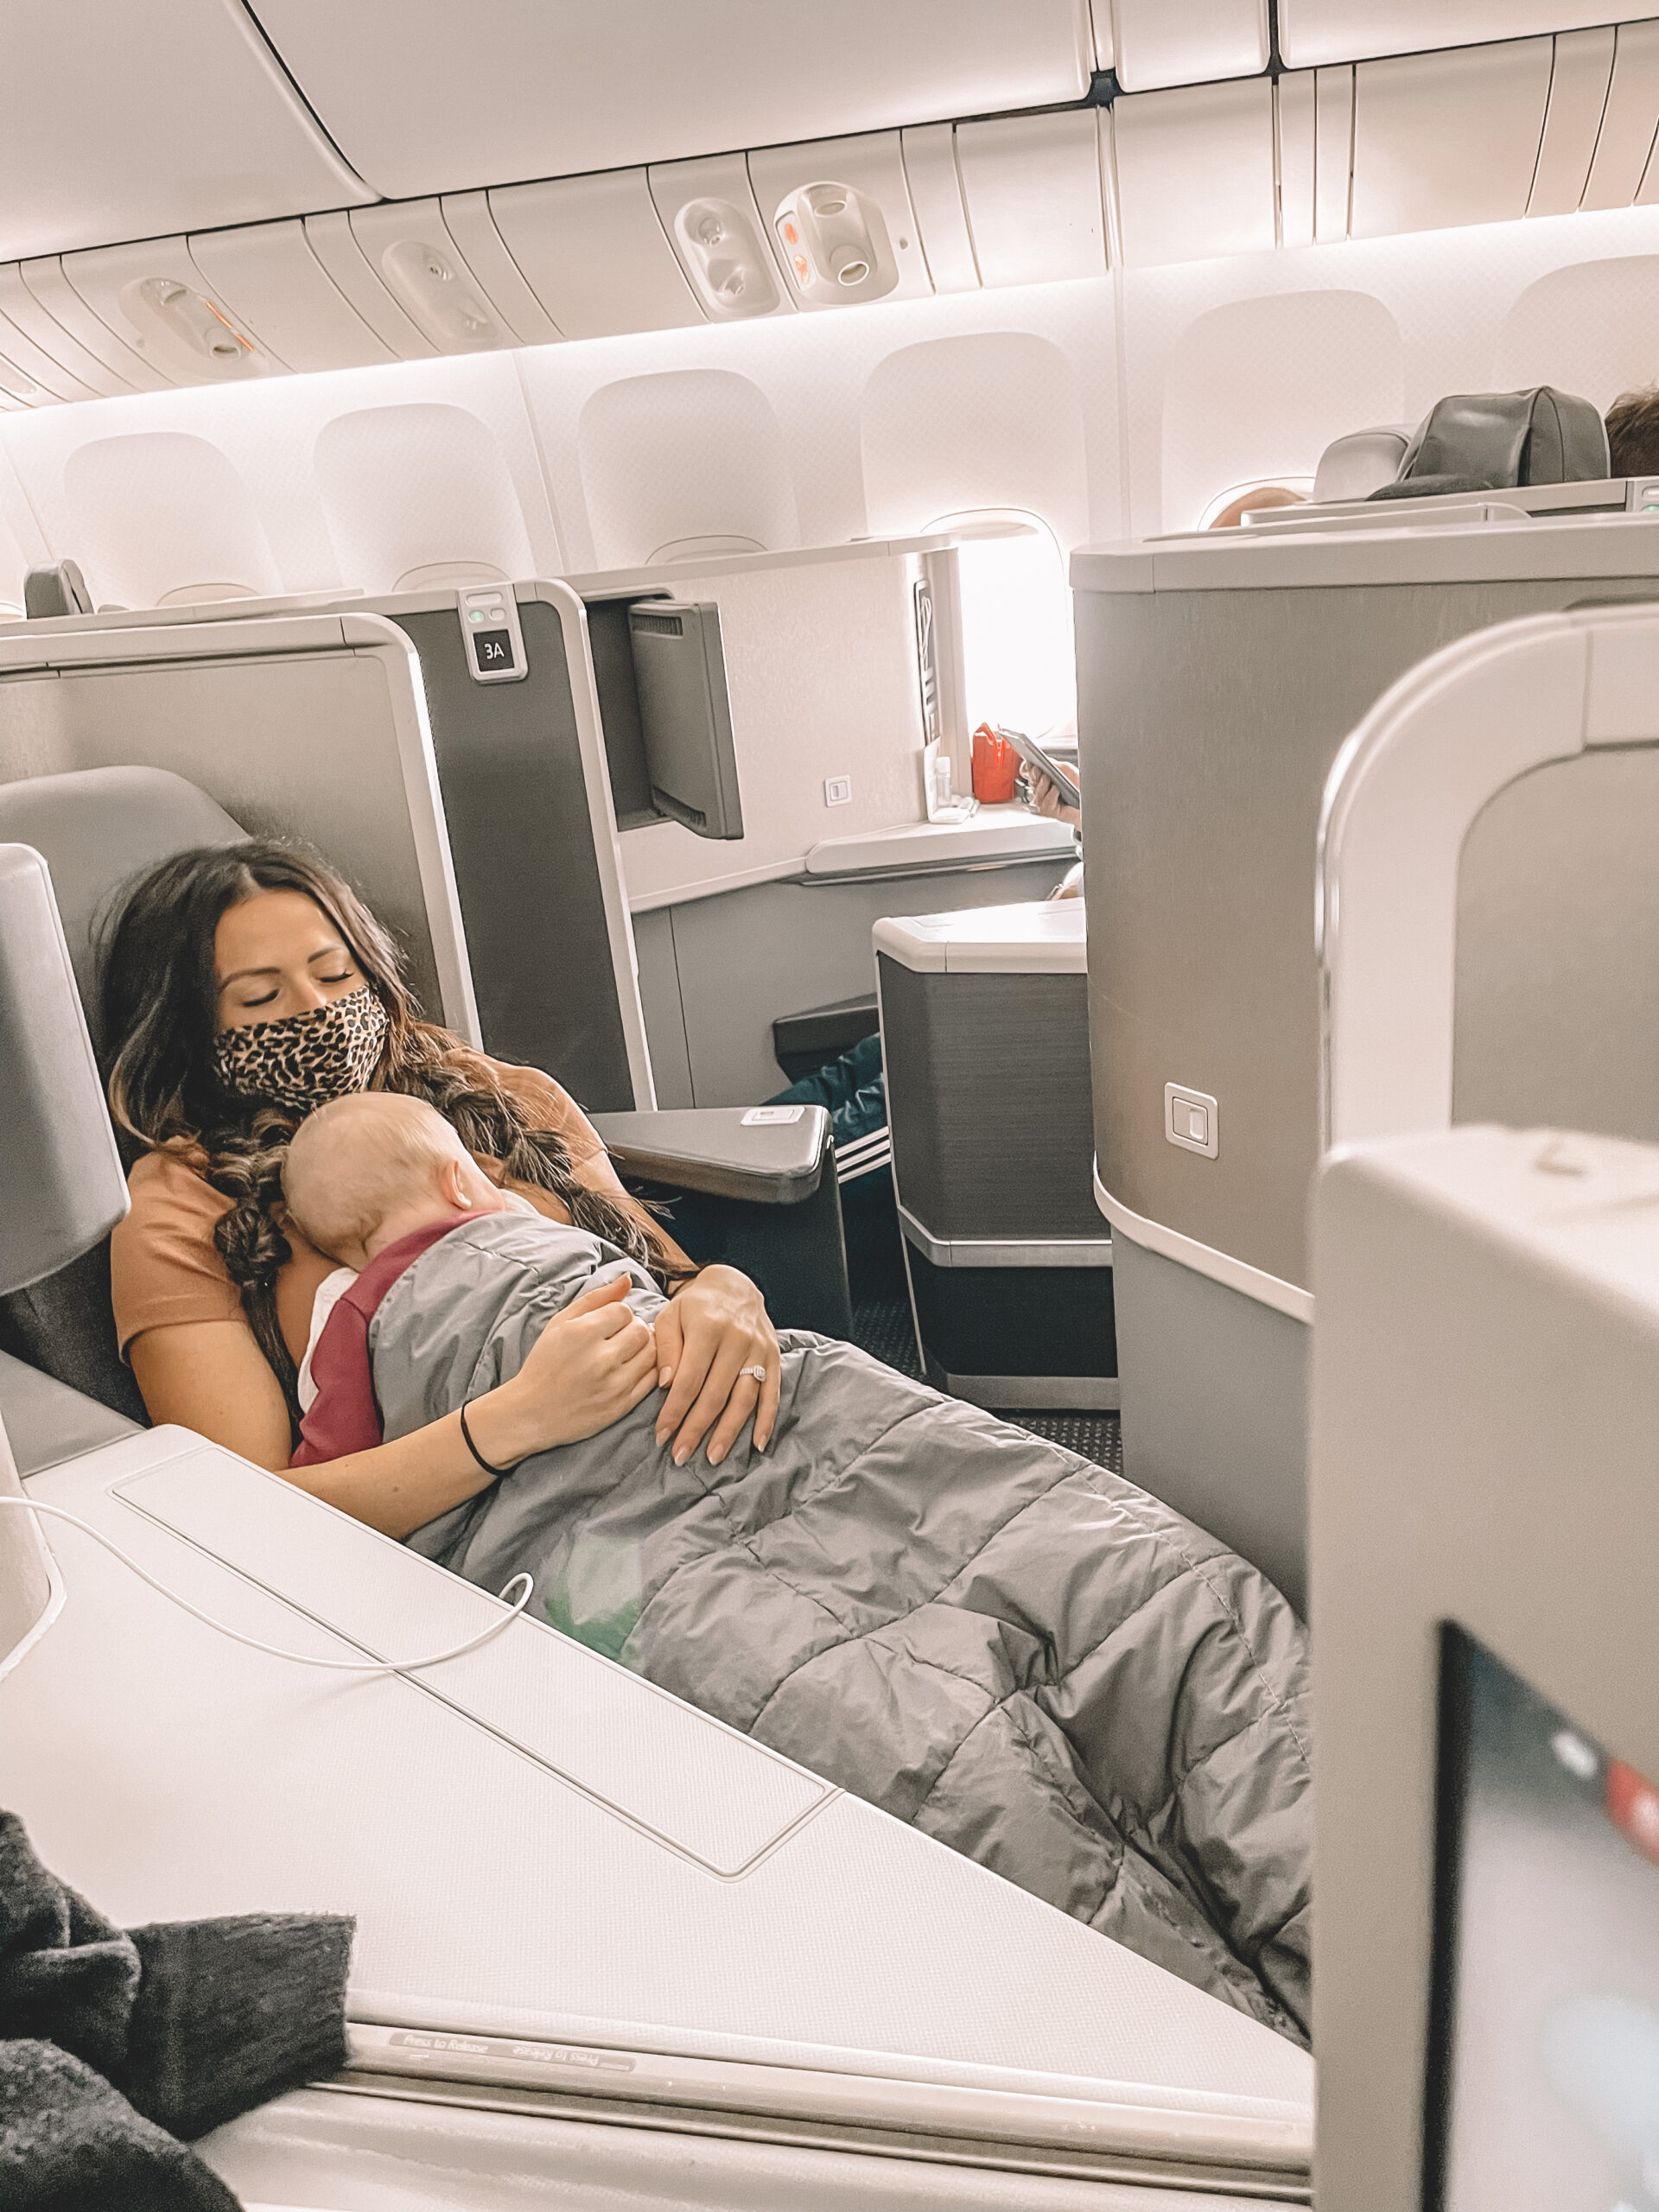 8+ Hour Flight with a Baby Tips